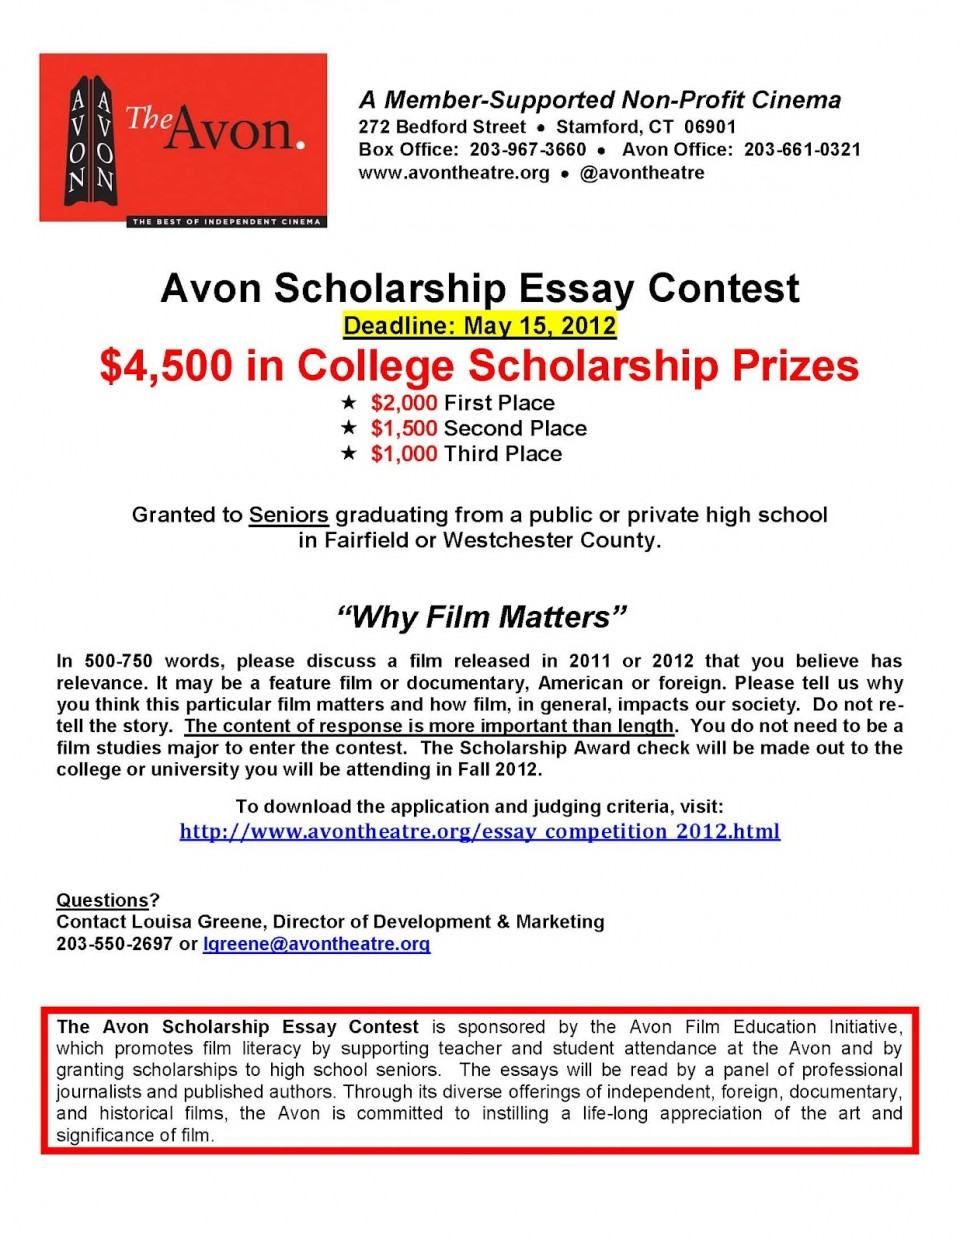 016 Avonscholarshipessaycontest2012flyer Essay Example Shocking Scholarships 2018 Canada 2019 No For High School Juniors 960